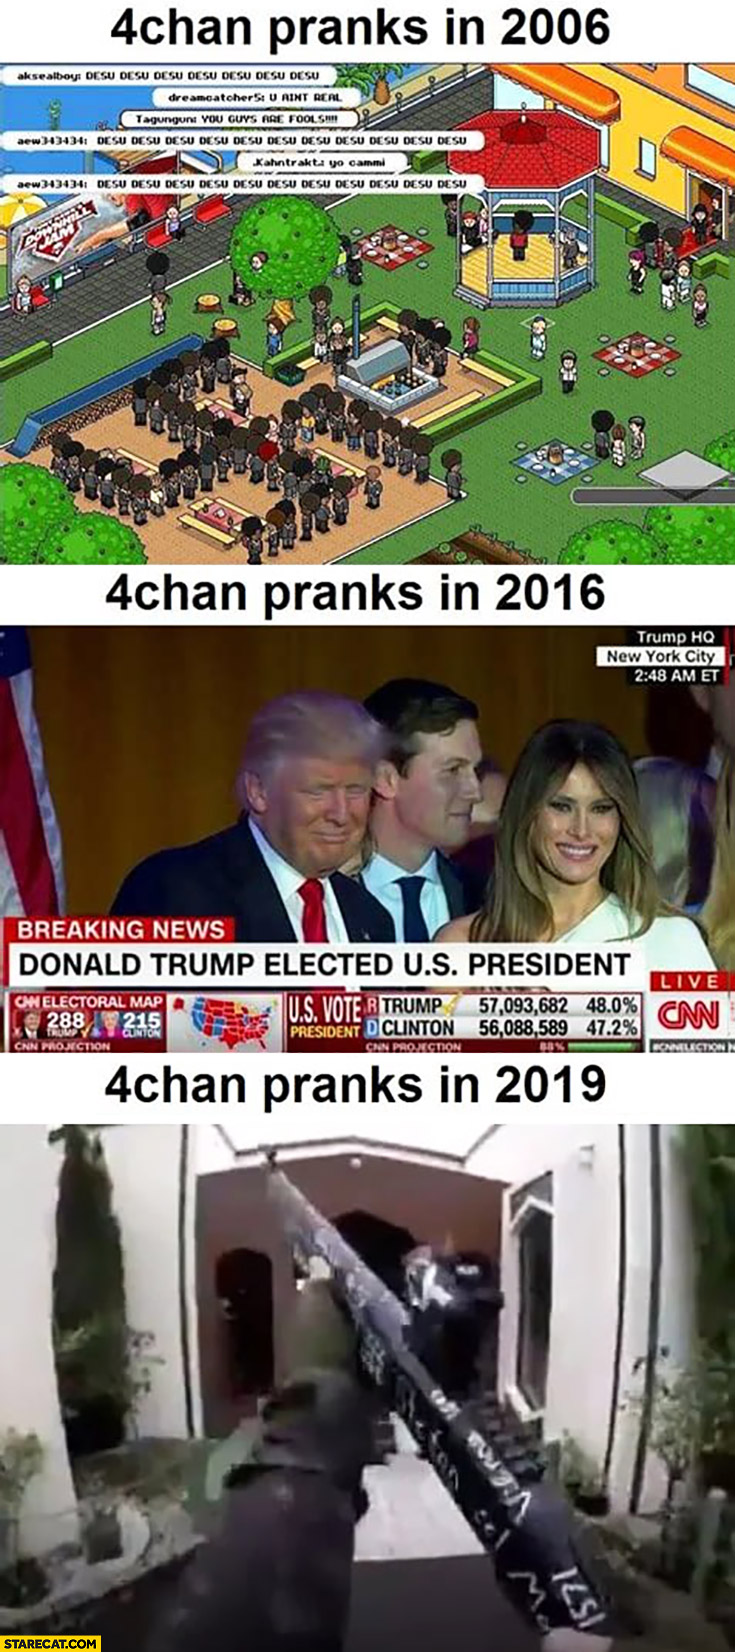 4chan pranks in 2006, 2016, 2019 New Zeland Christchurch terrorist attack shooting